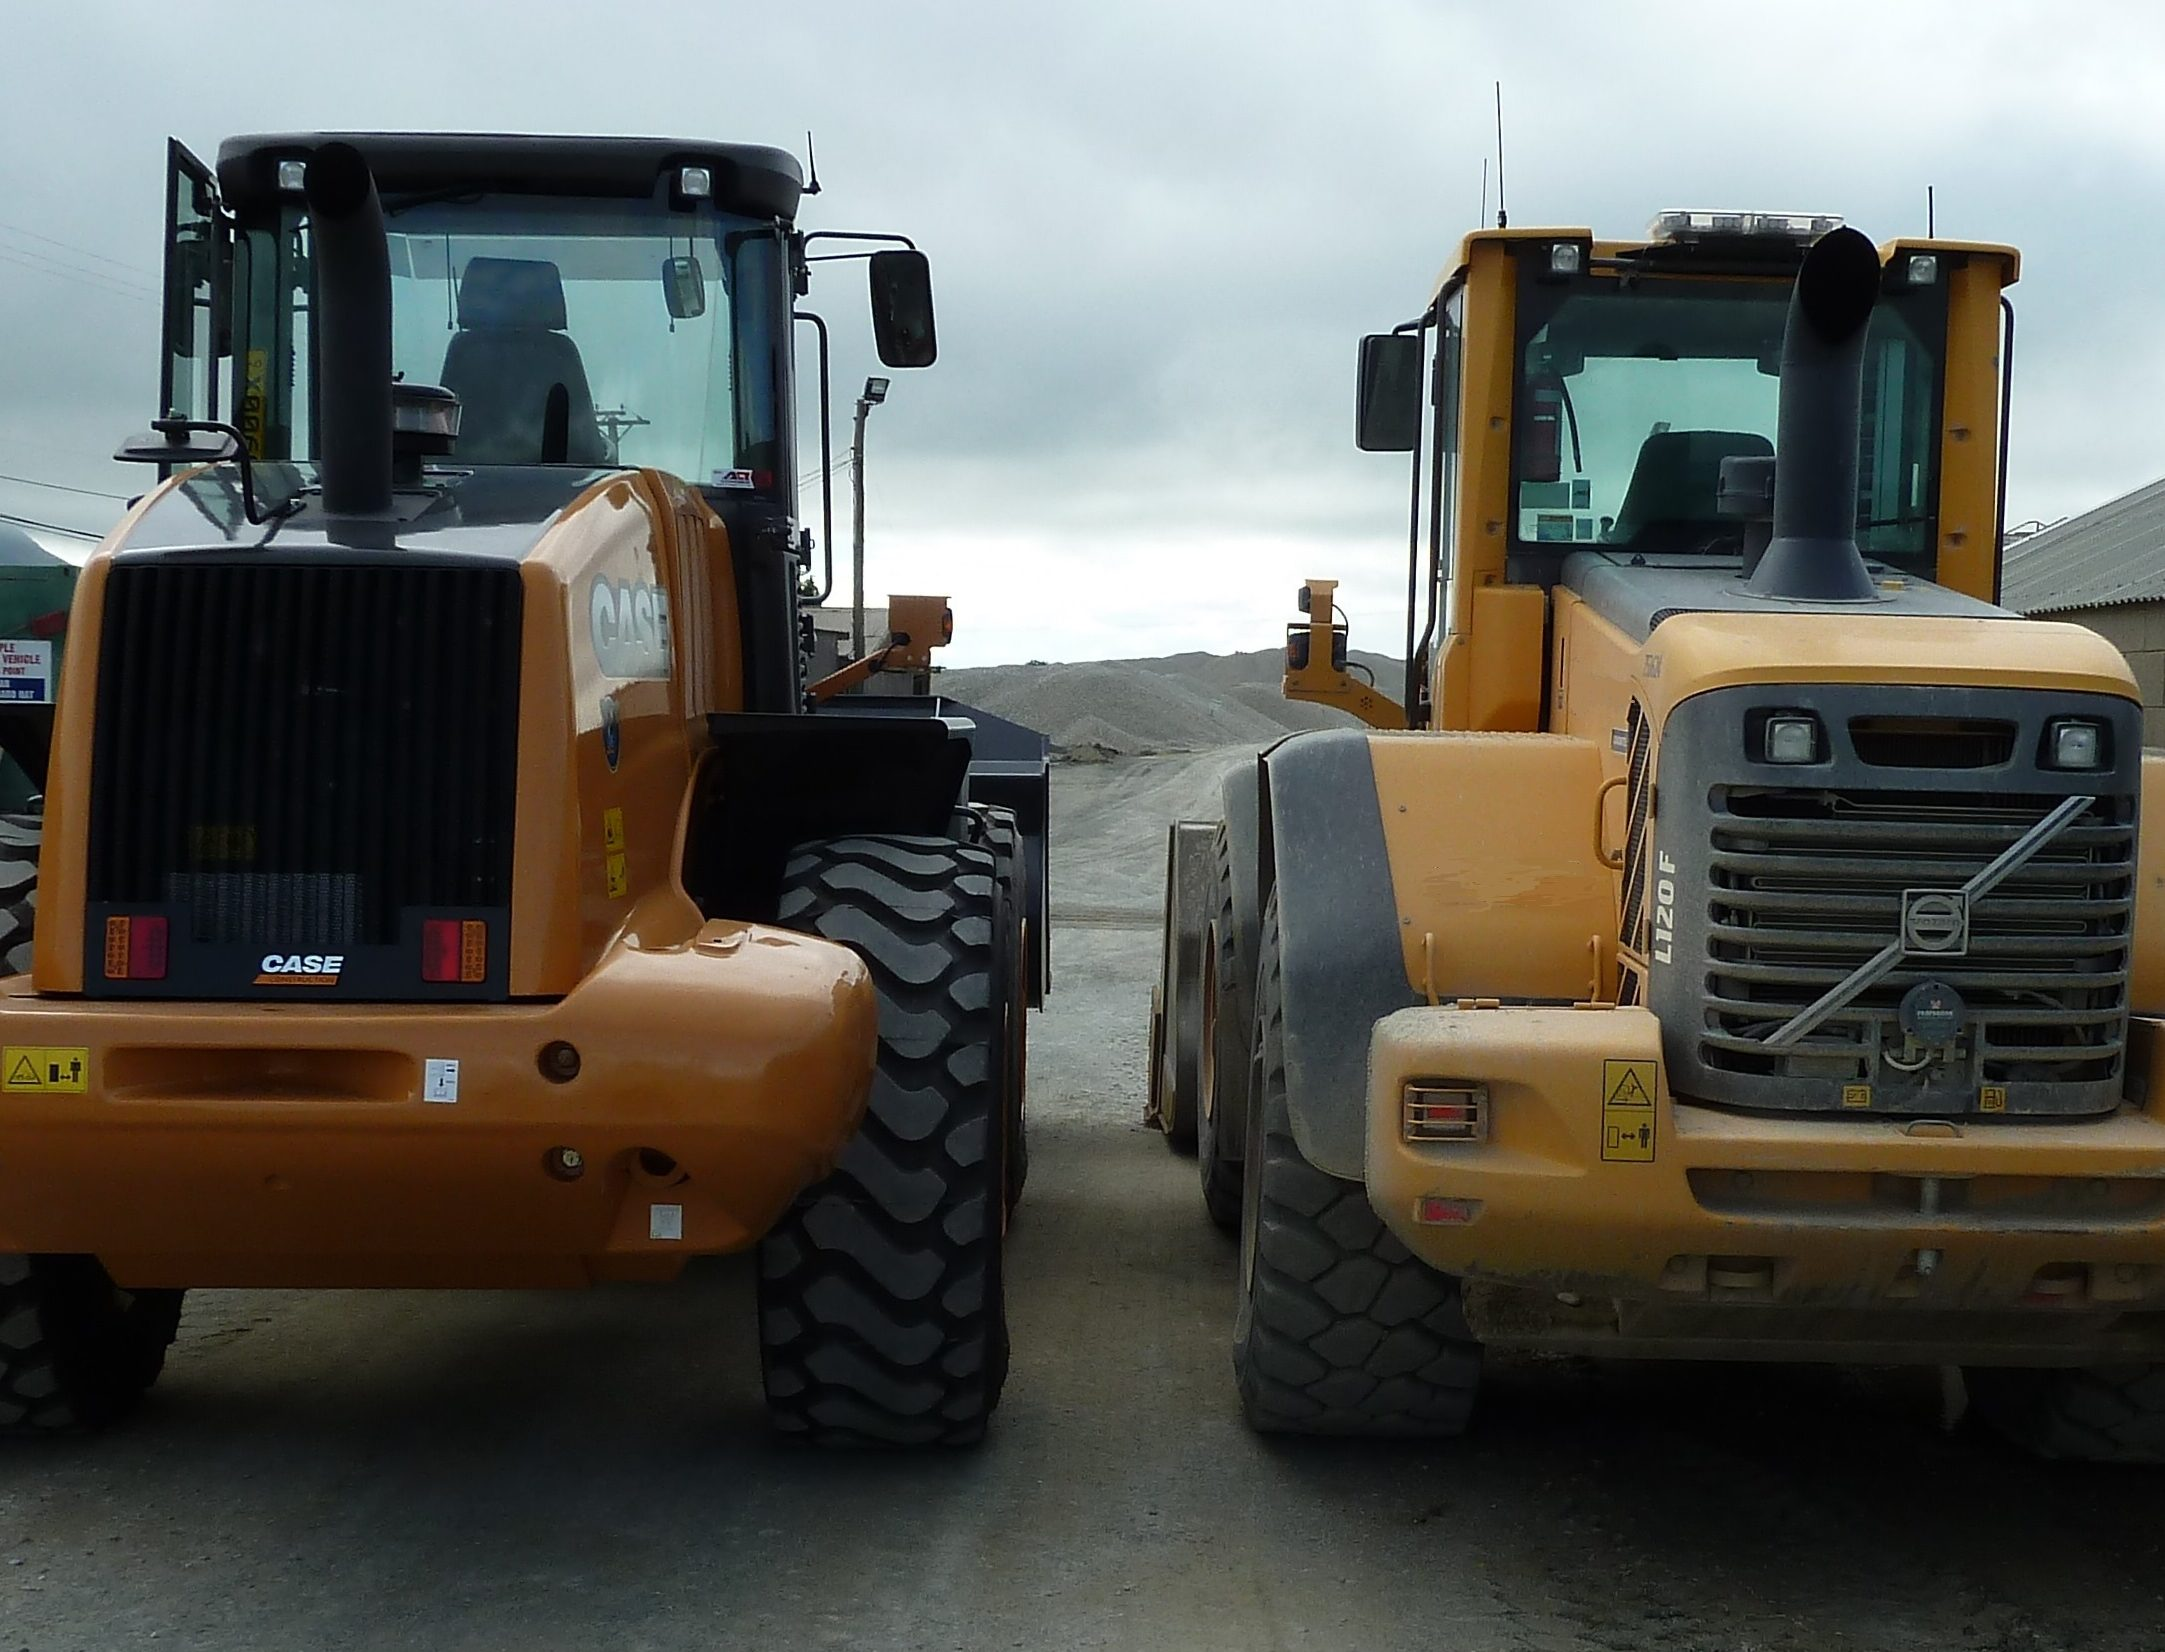 Case holds distinct advantages over CAT, Hyundai & Volvo Loaders